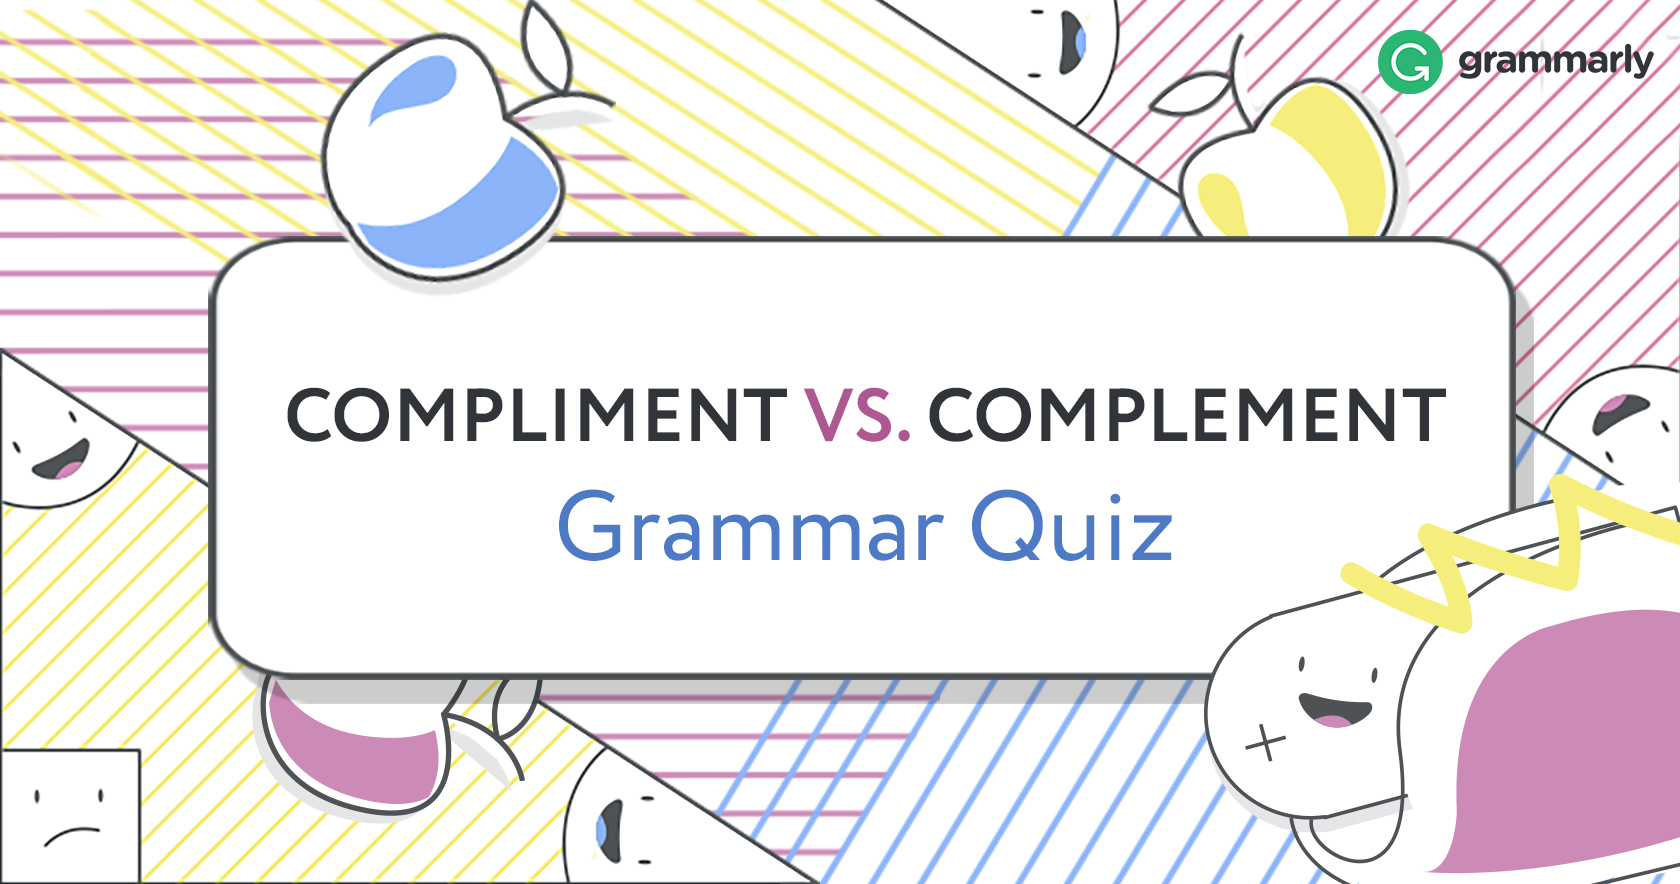 Complement or Compliment Quiz Header Image